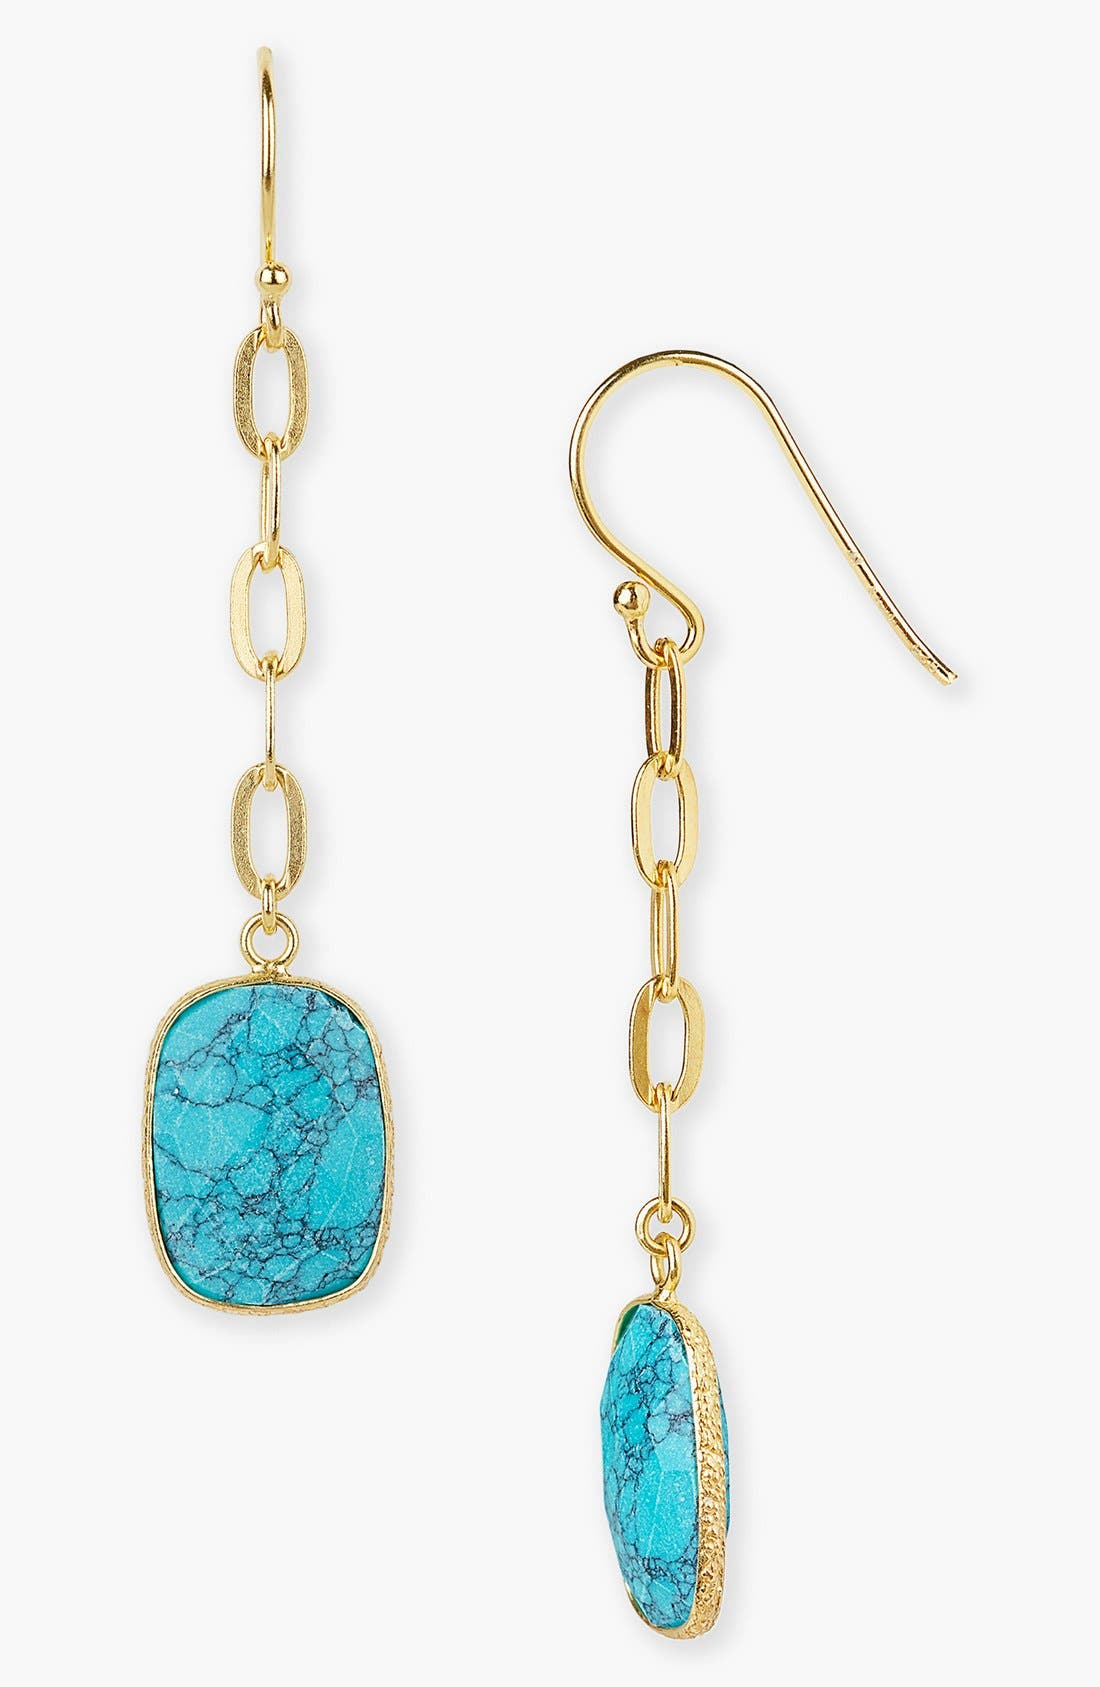 Alternate Image 1 Selected - Argento Vivo Linear Turquoise Drop Earrings